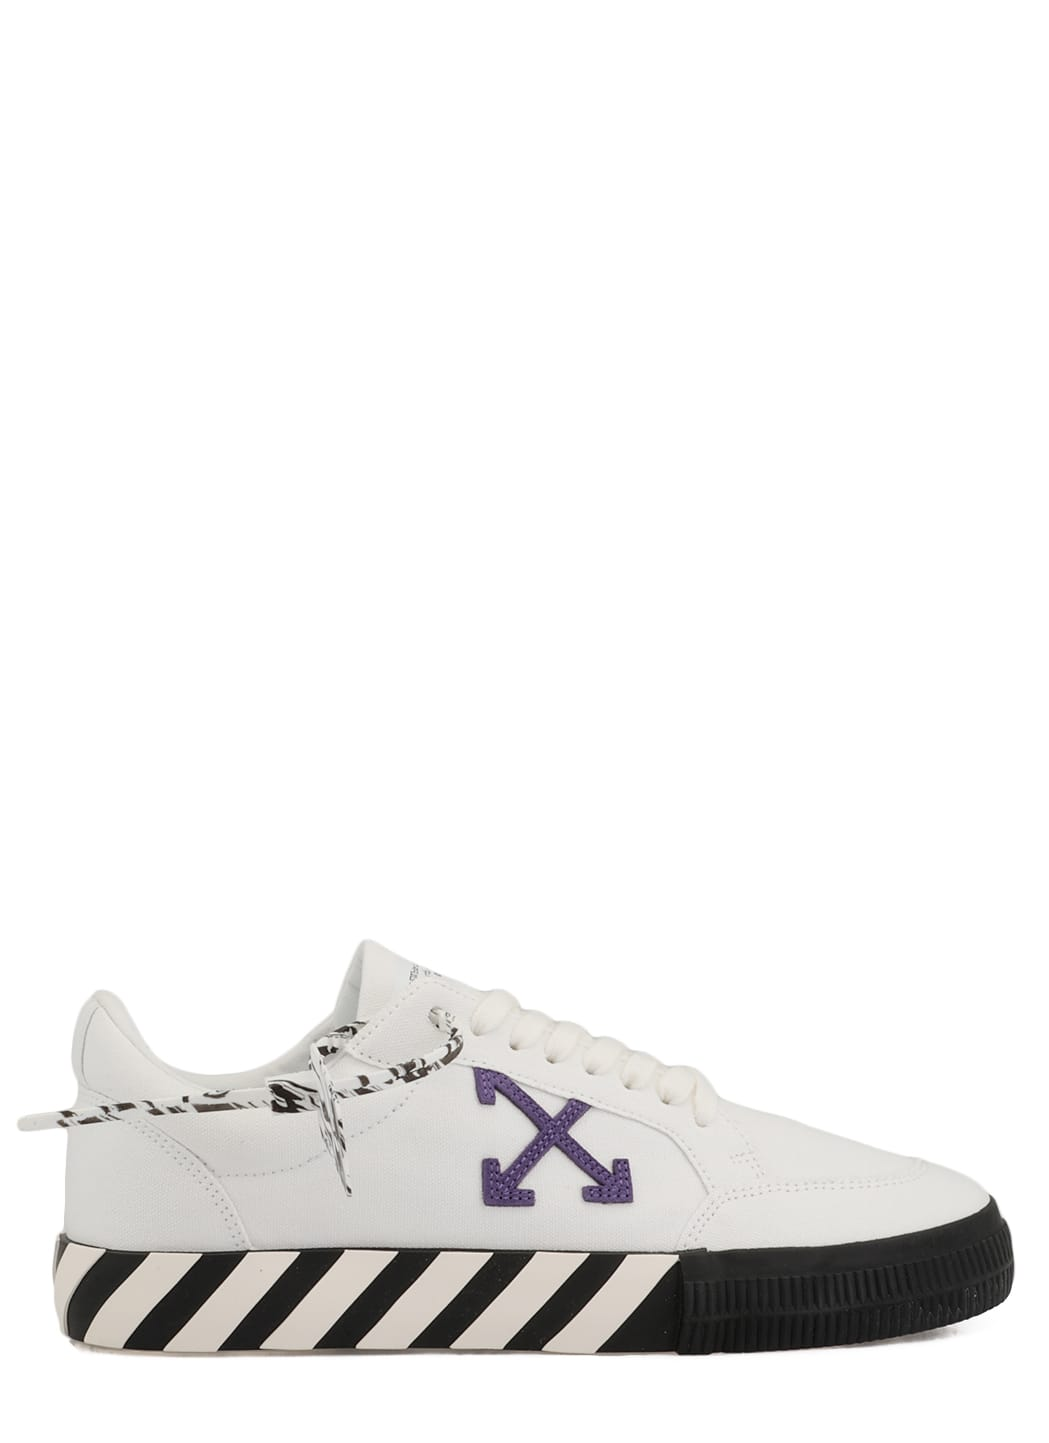 OFF-WHITE LOW TOP VULCANIZED SNEAKERS